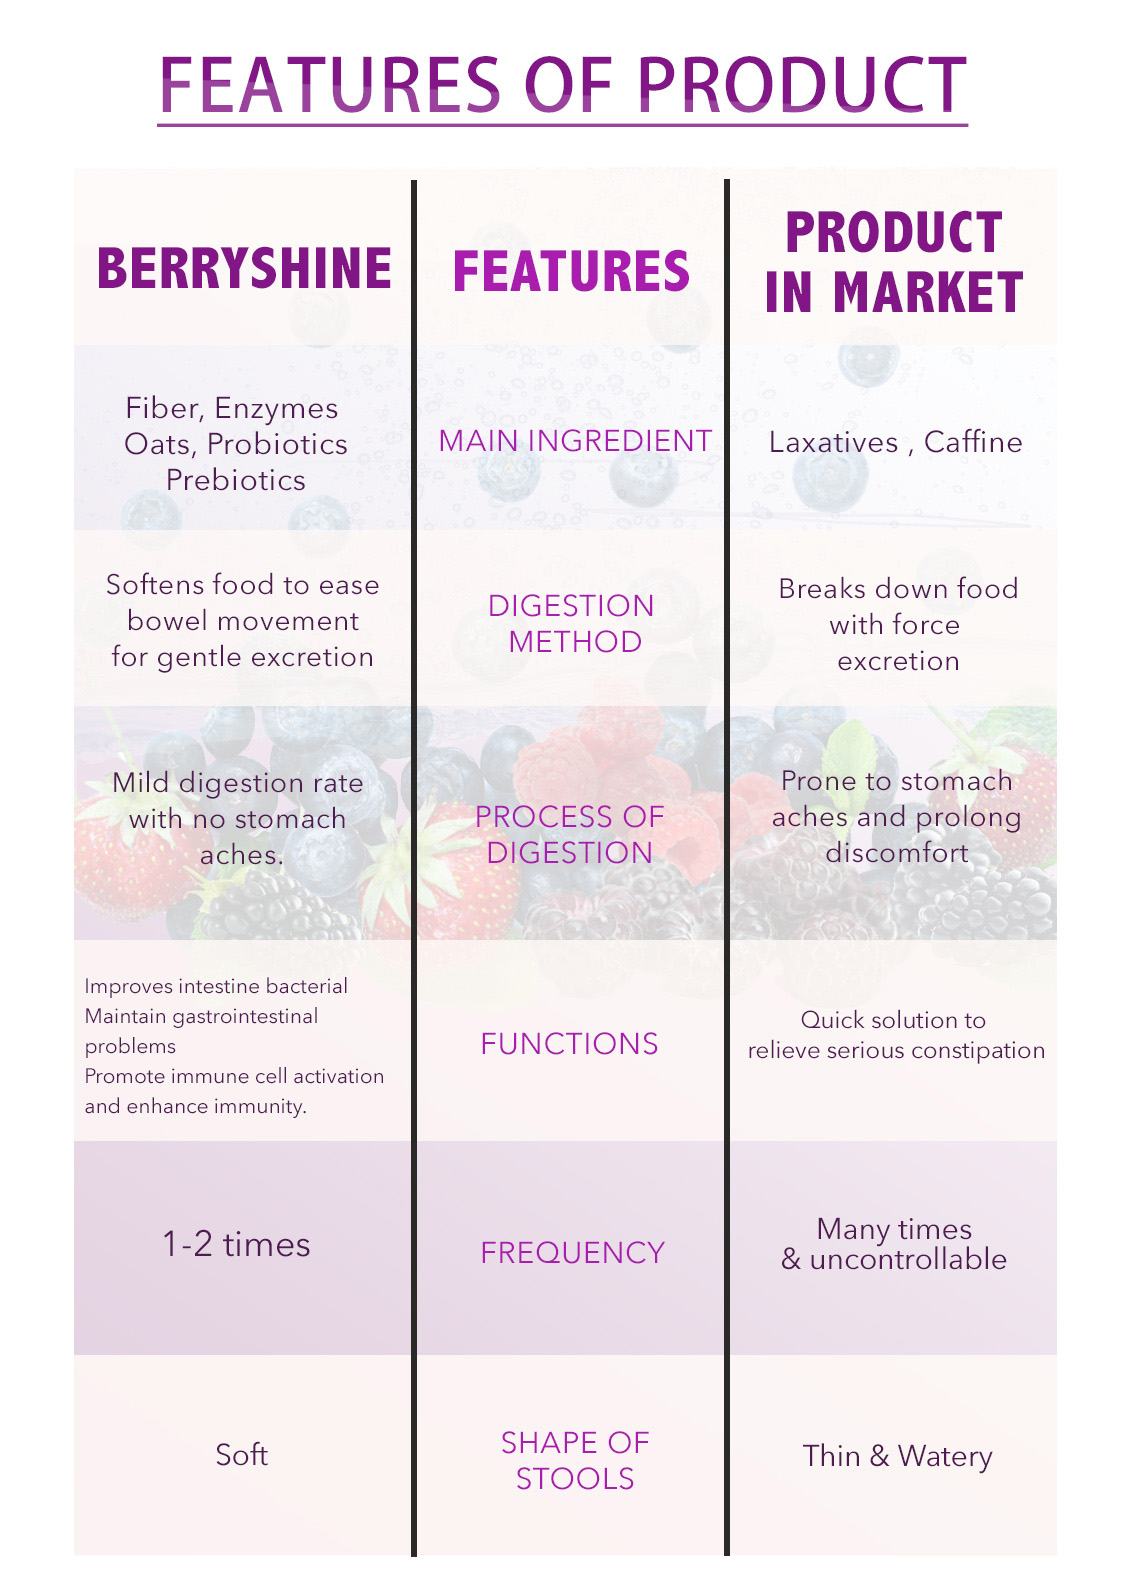 Berryshine features